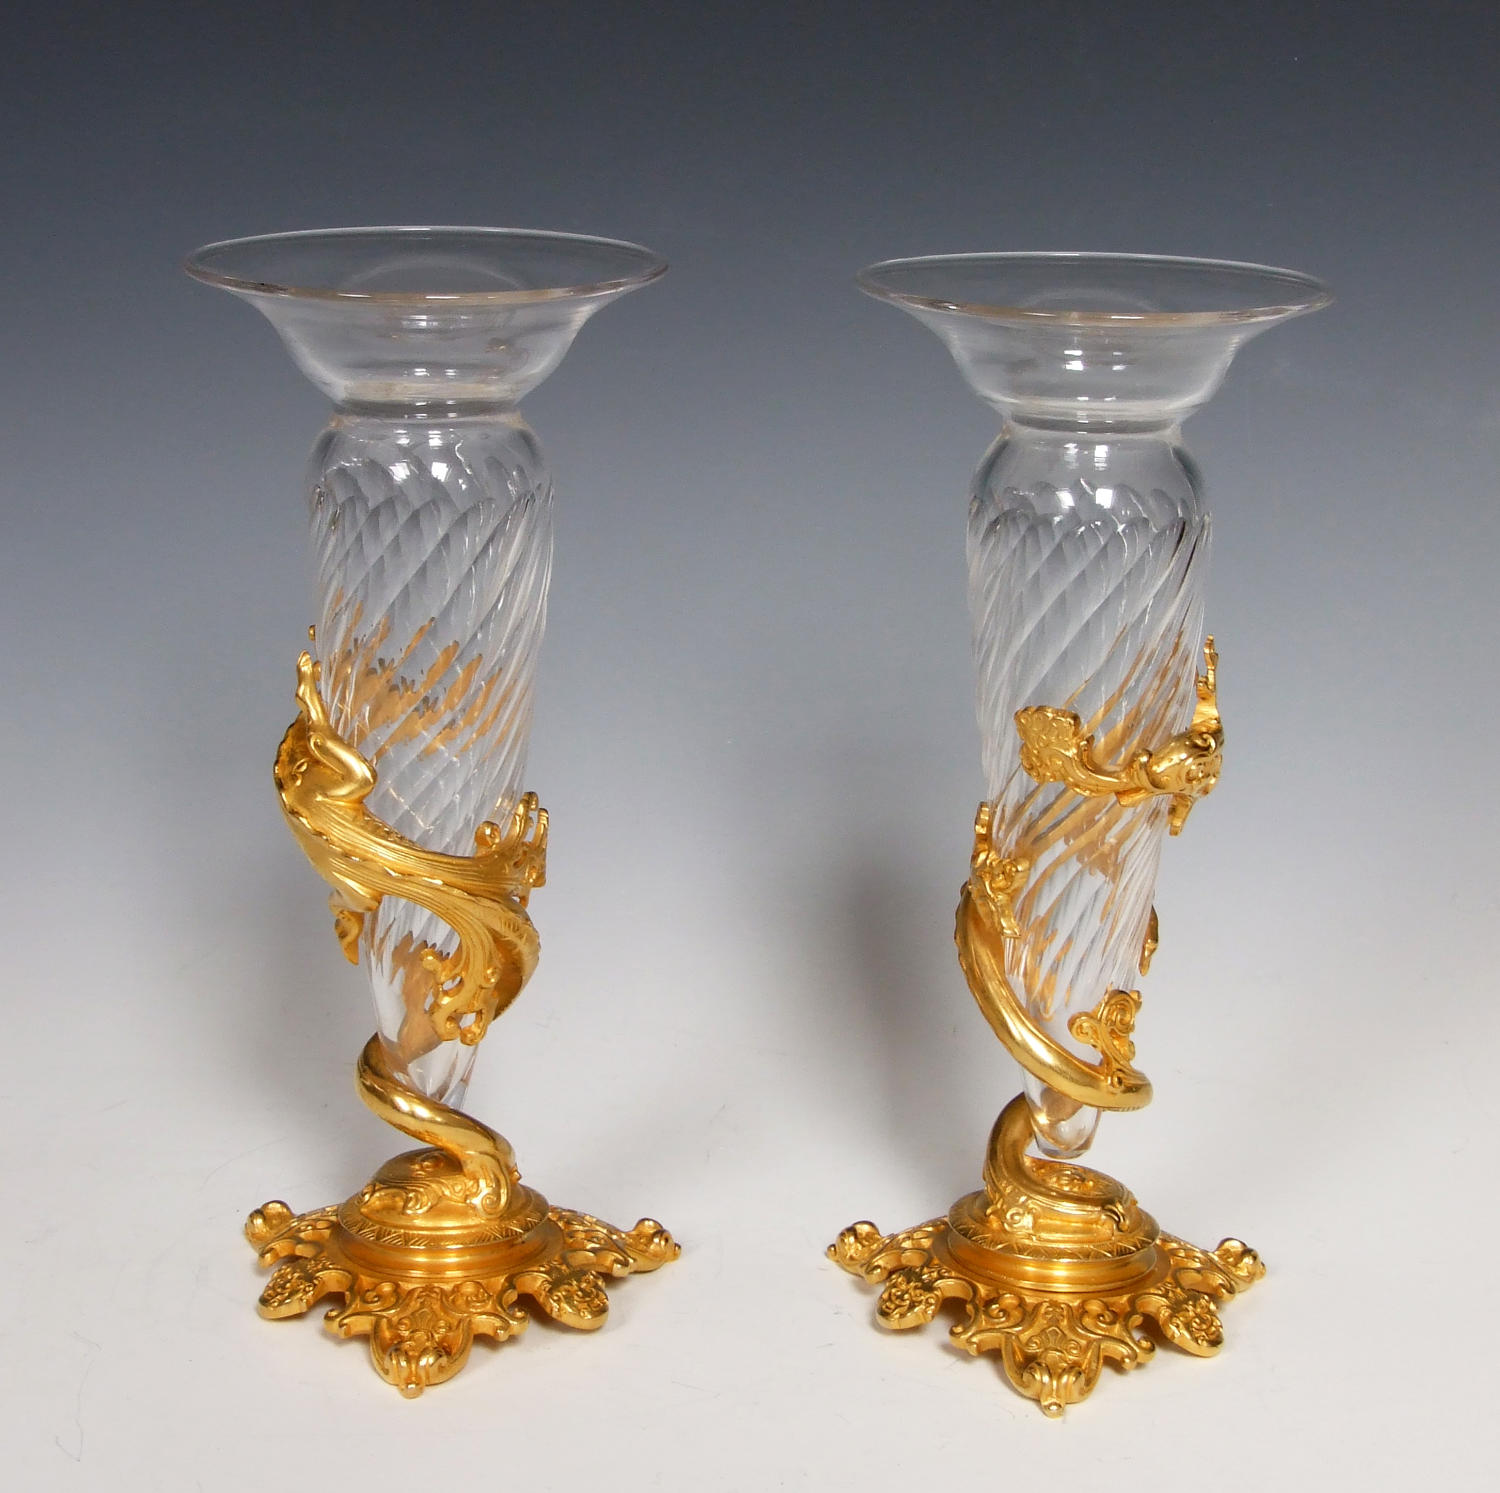 Superb pair of 'Escalier de Cristal' ormolu and glass dragon vases